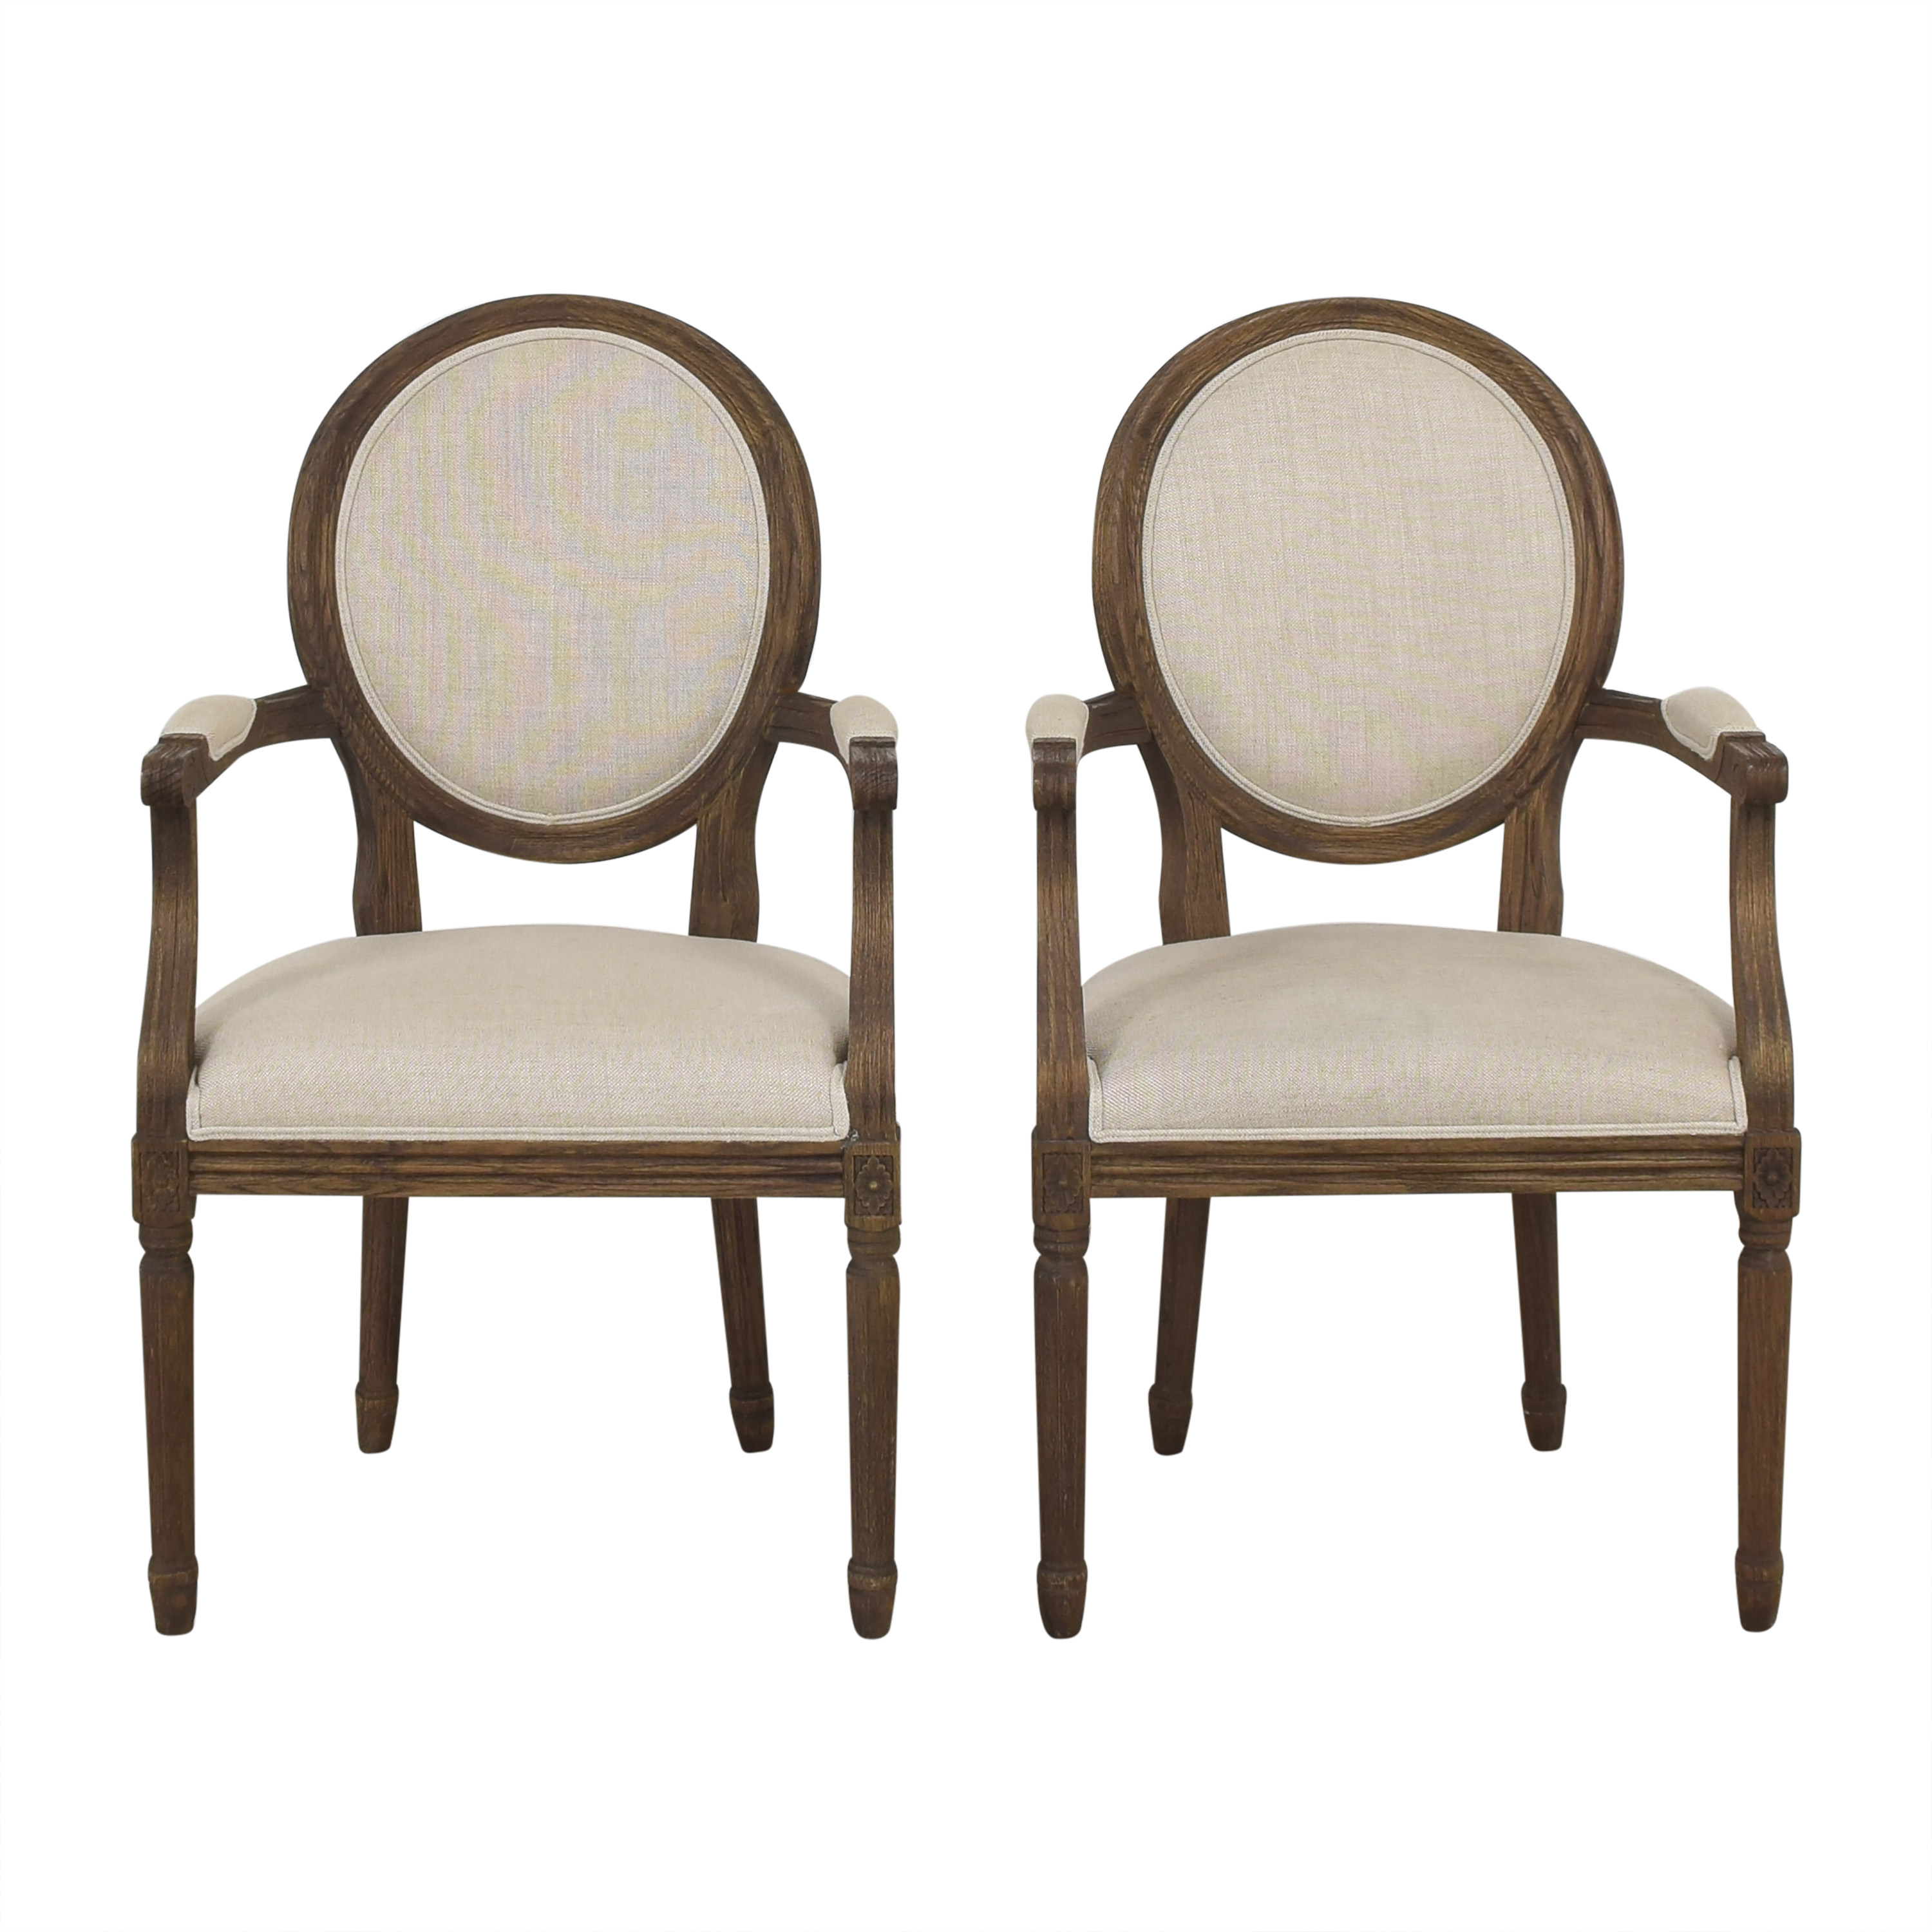 Restoration Hardware Restoration Hardware Vintage French Round Dining Arm Chairs